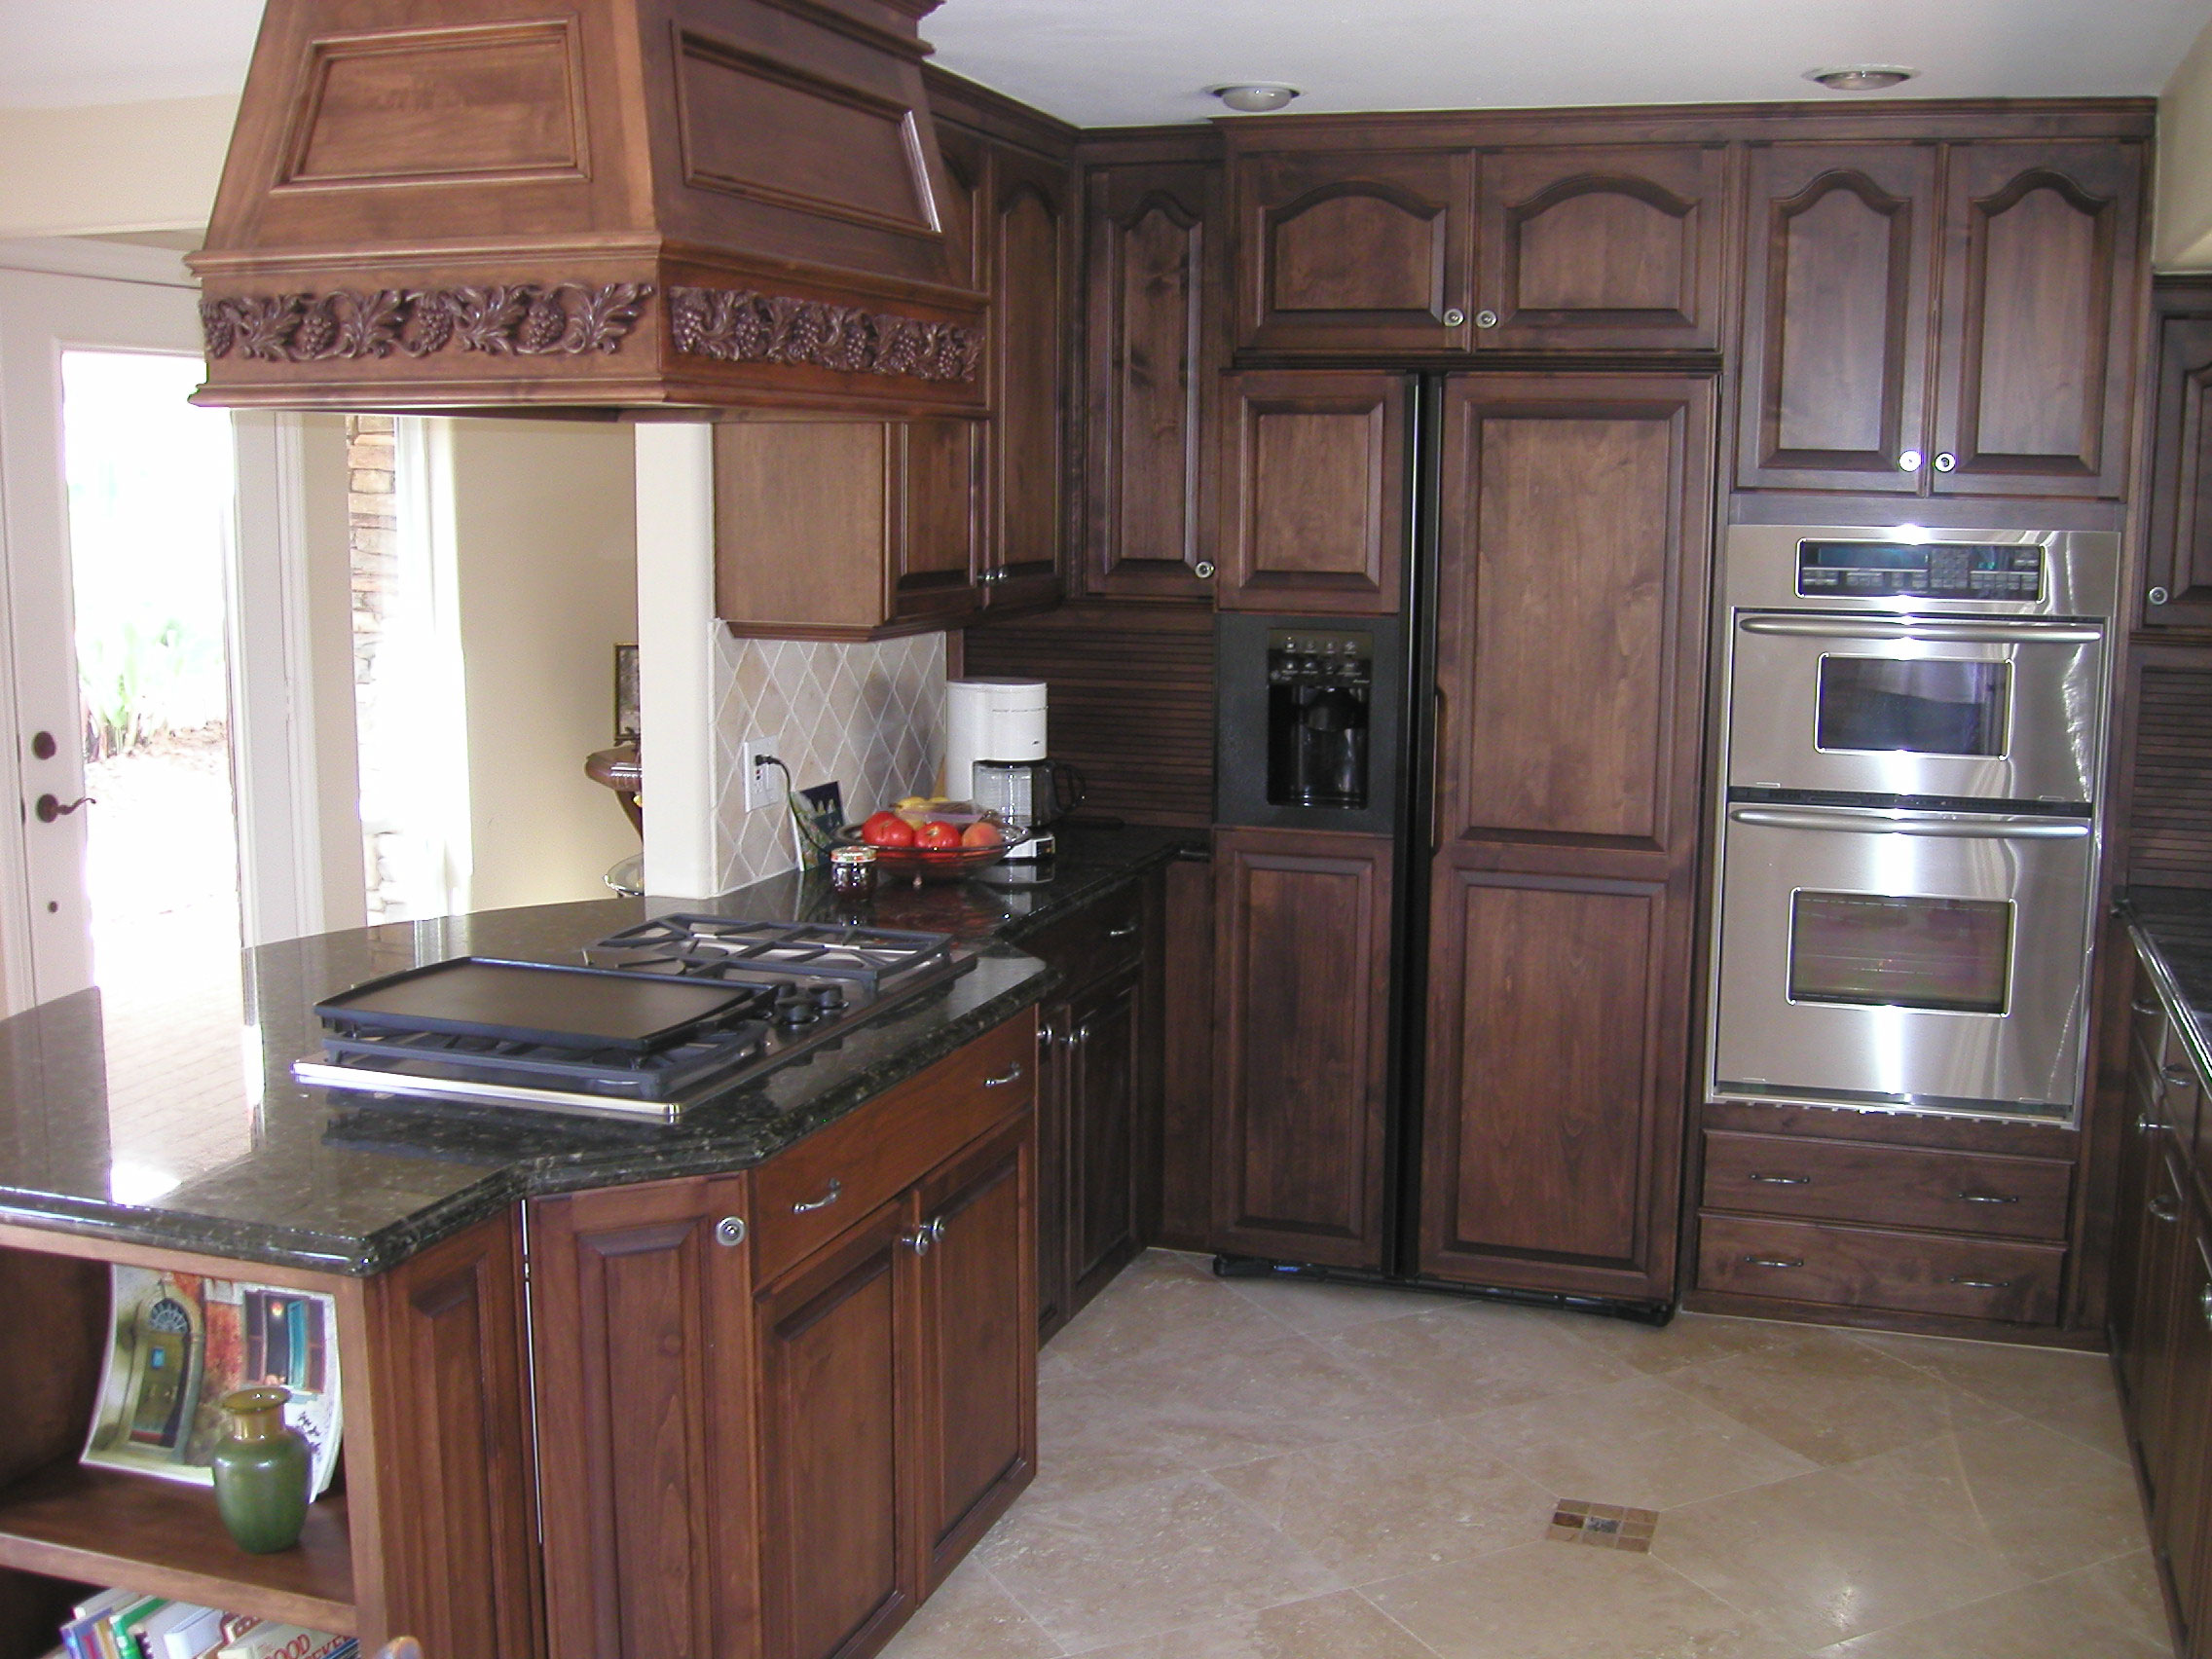 Kitchen image kitchen bathroom design center for Dark oak kitchen cabinets